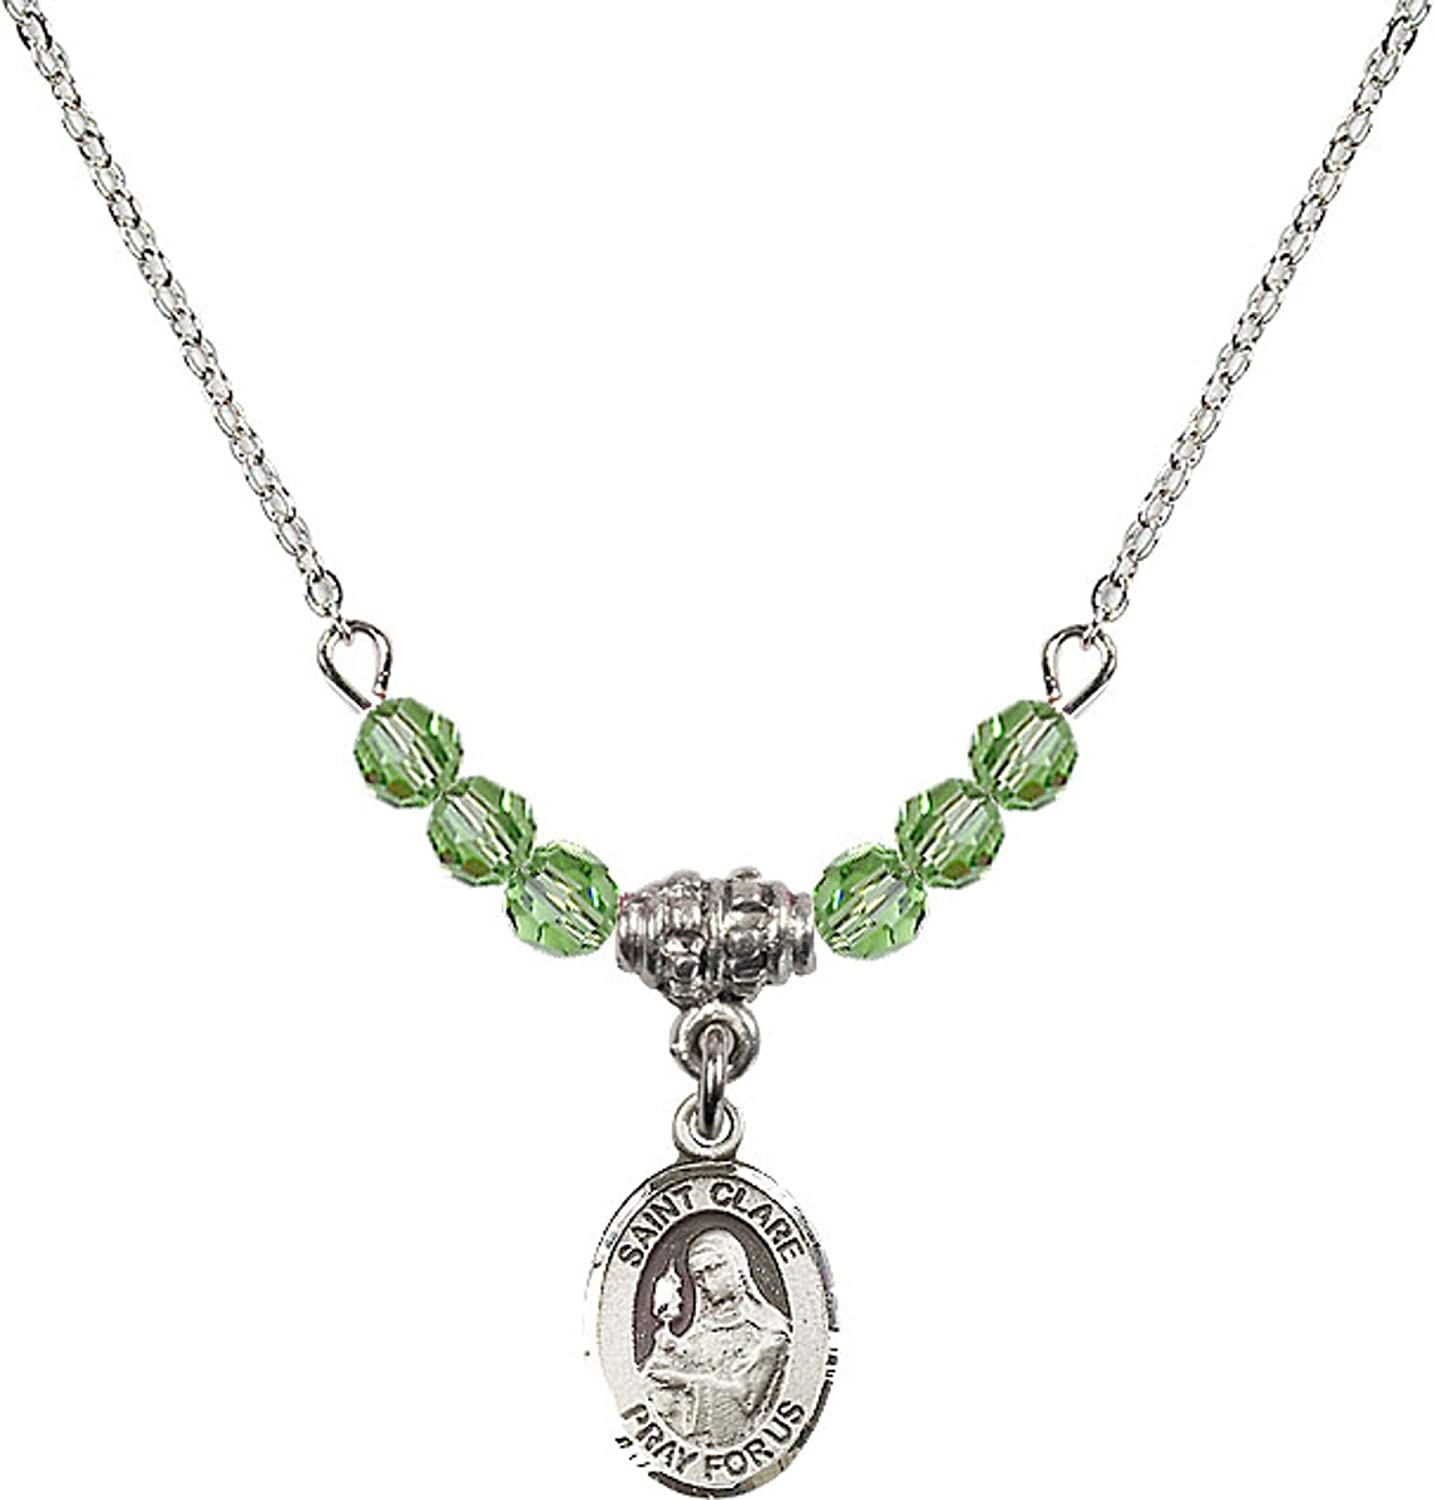 Bonyak Jewelry 18 Inch Rhodium Plated Necklace w// 4mm Green August Birth Month Stone Beads and Saint Clare of Assisi Charm